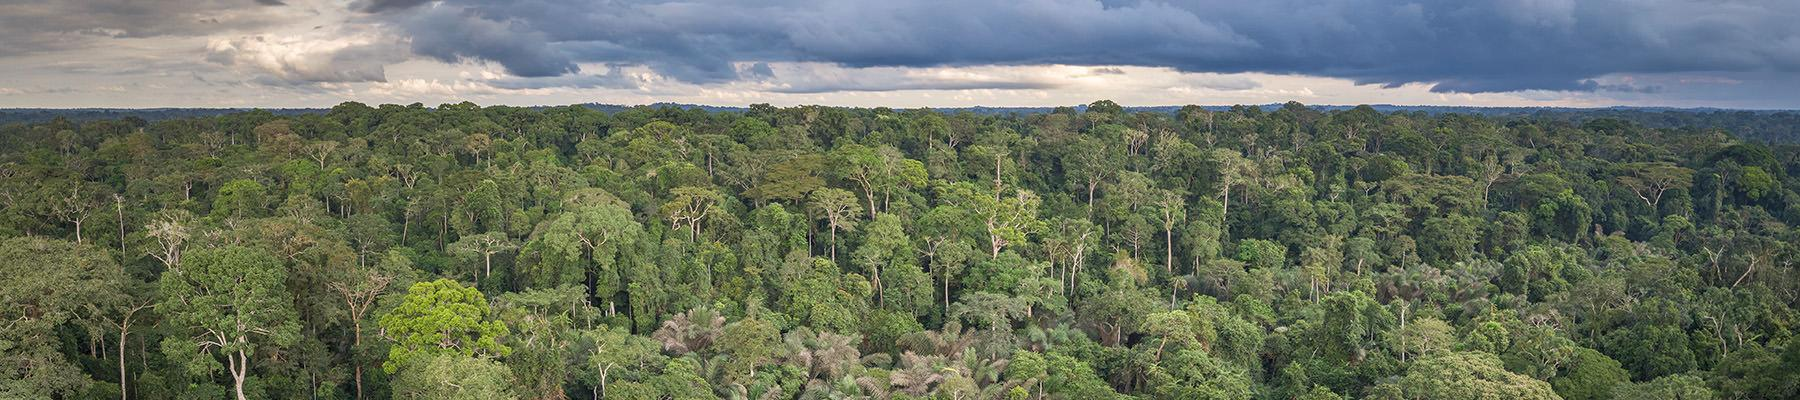 Tropical forest in Dja National Park, Cameroon © A.Walmsley / TRAFFIC